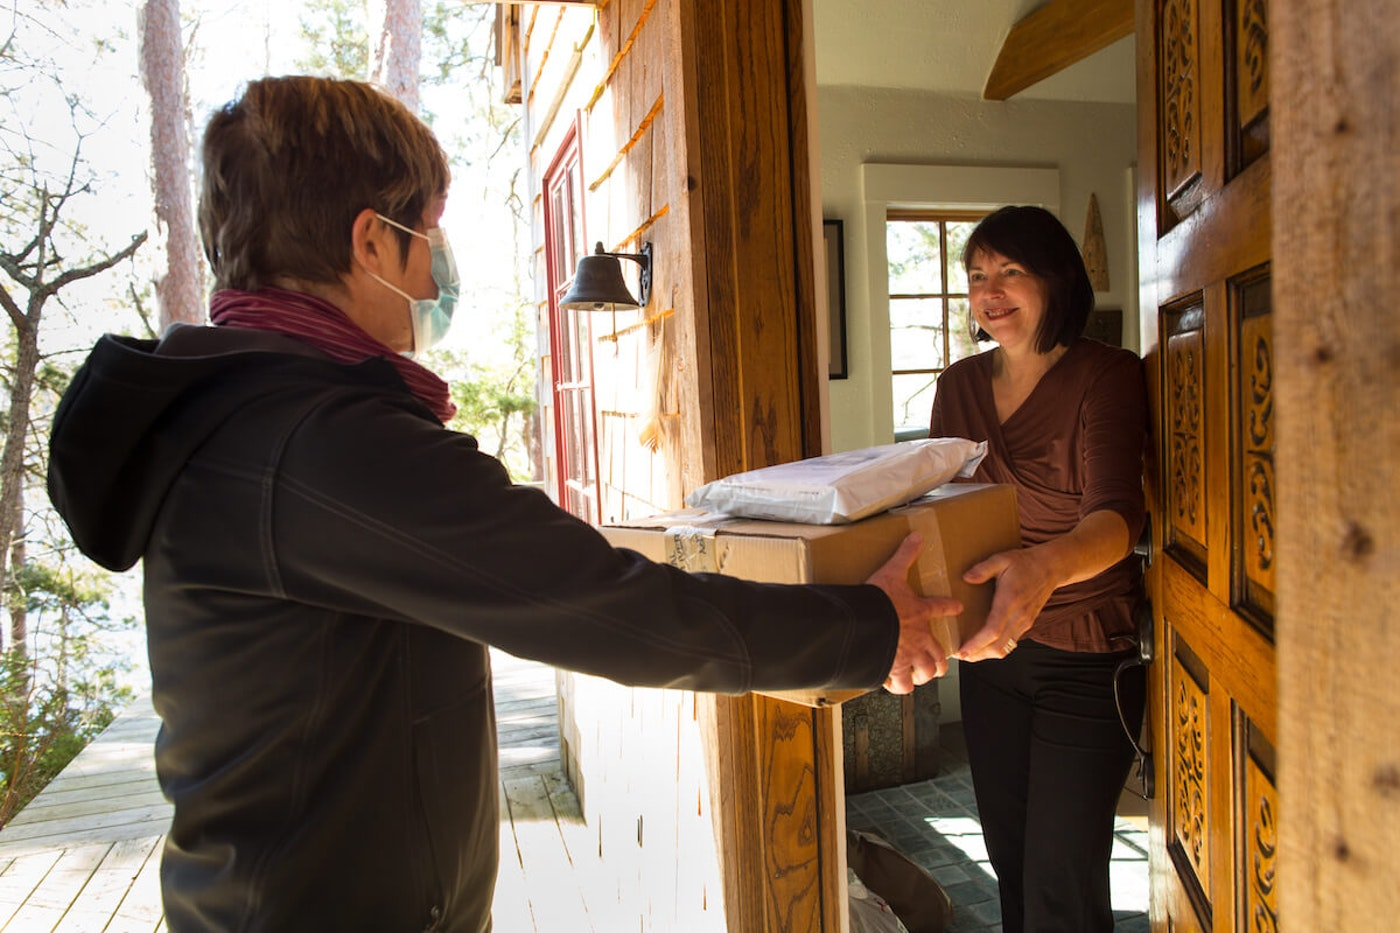 A woman accepts a package at her door from a masked delivery person. (Photo by Tim Bieber/Getty Images)